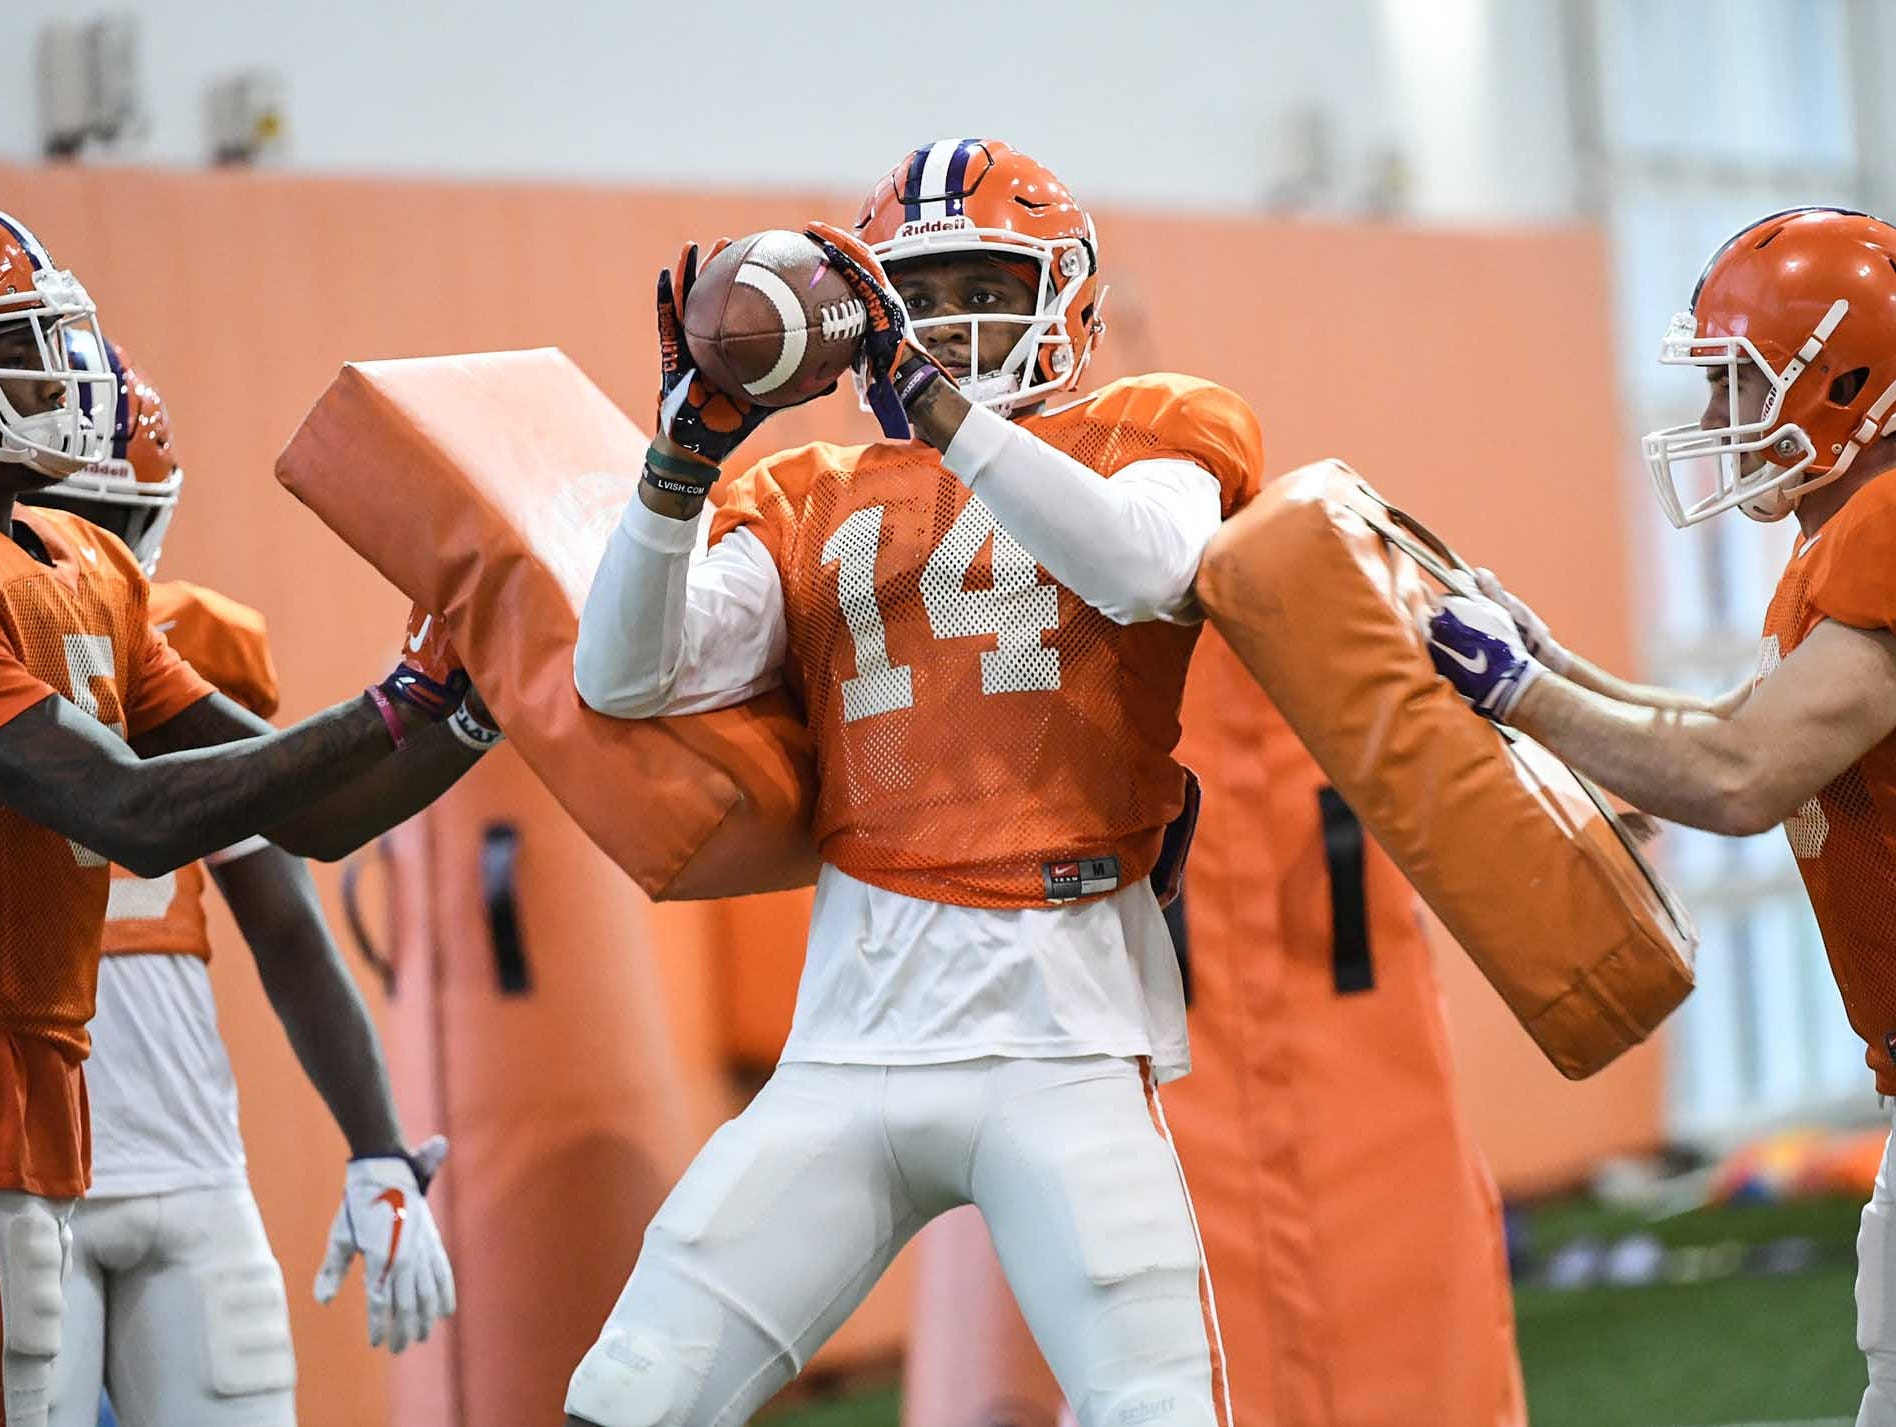 Clemson wide receiver Diondre Overton (14) catches a pass during practice for the Cotton Bowl at the Poe Indoor Facility in Clemson Friday, December 14, 2018.